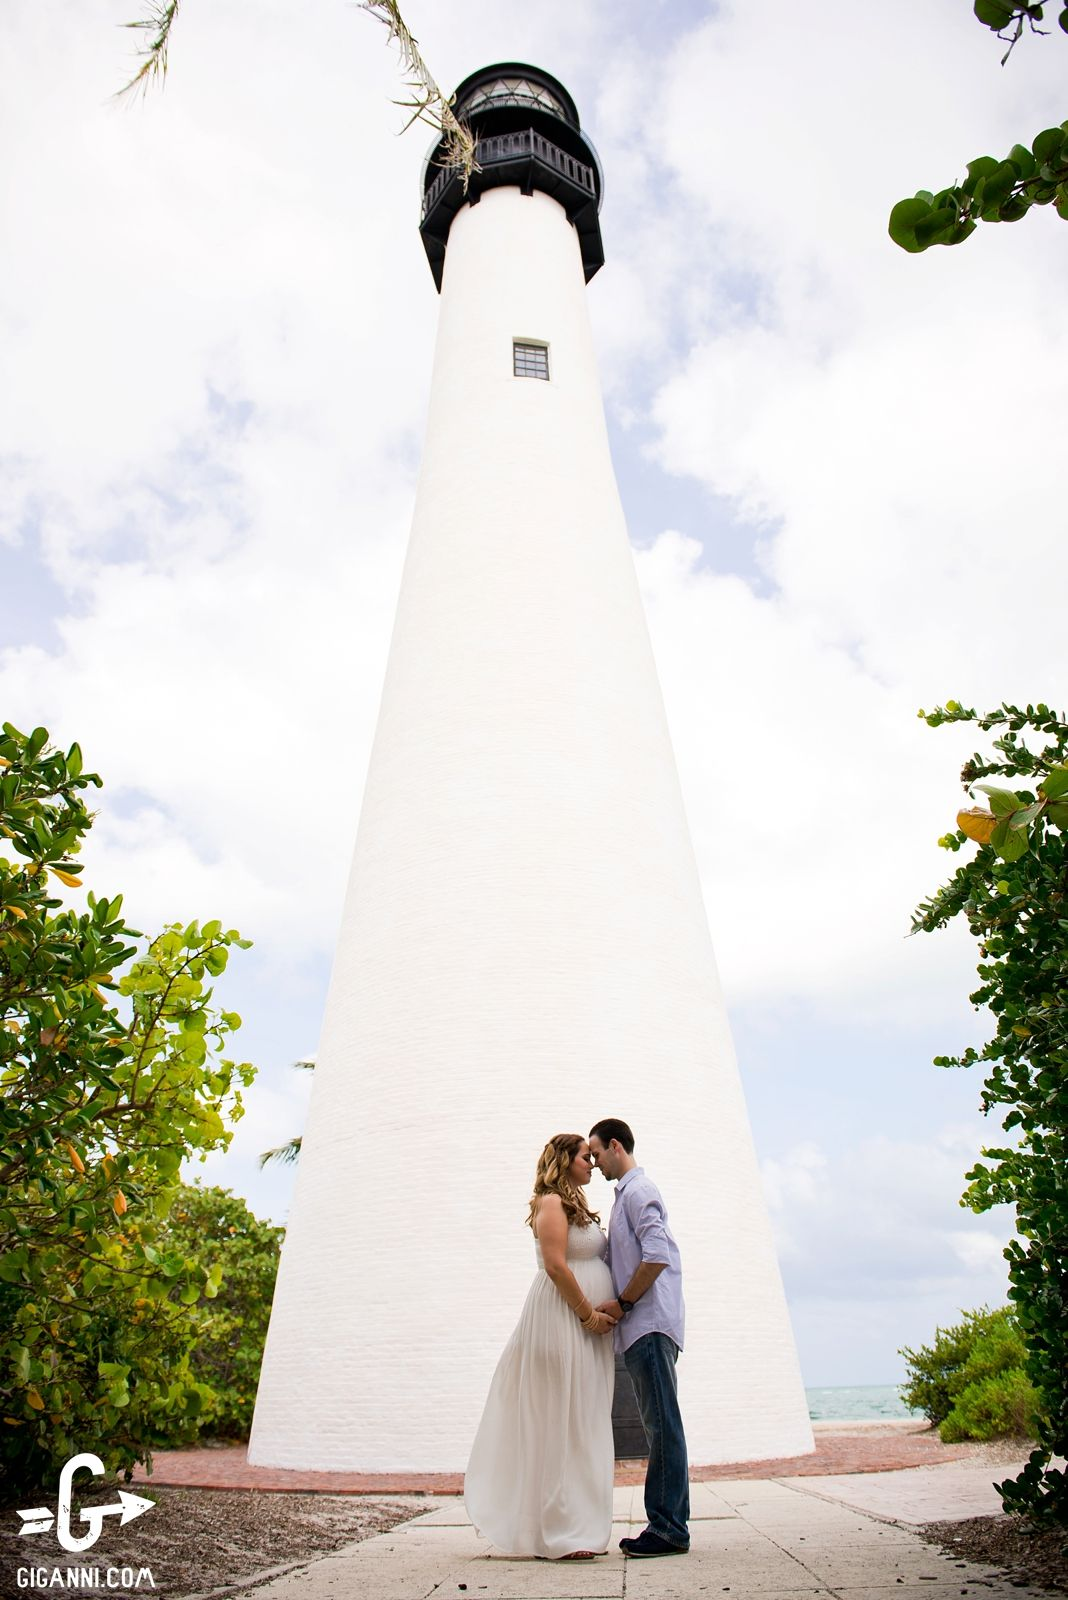 Engagement Session In Miami Front Of A Light House At The Key Biscayne Park Bill Baggs Cape State Pinterest And